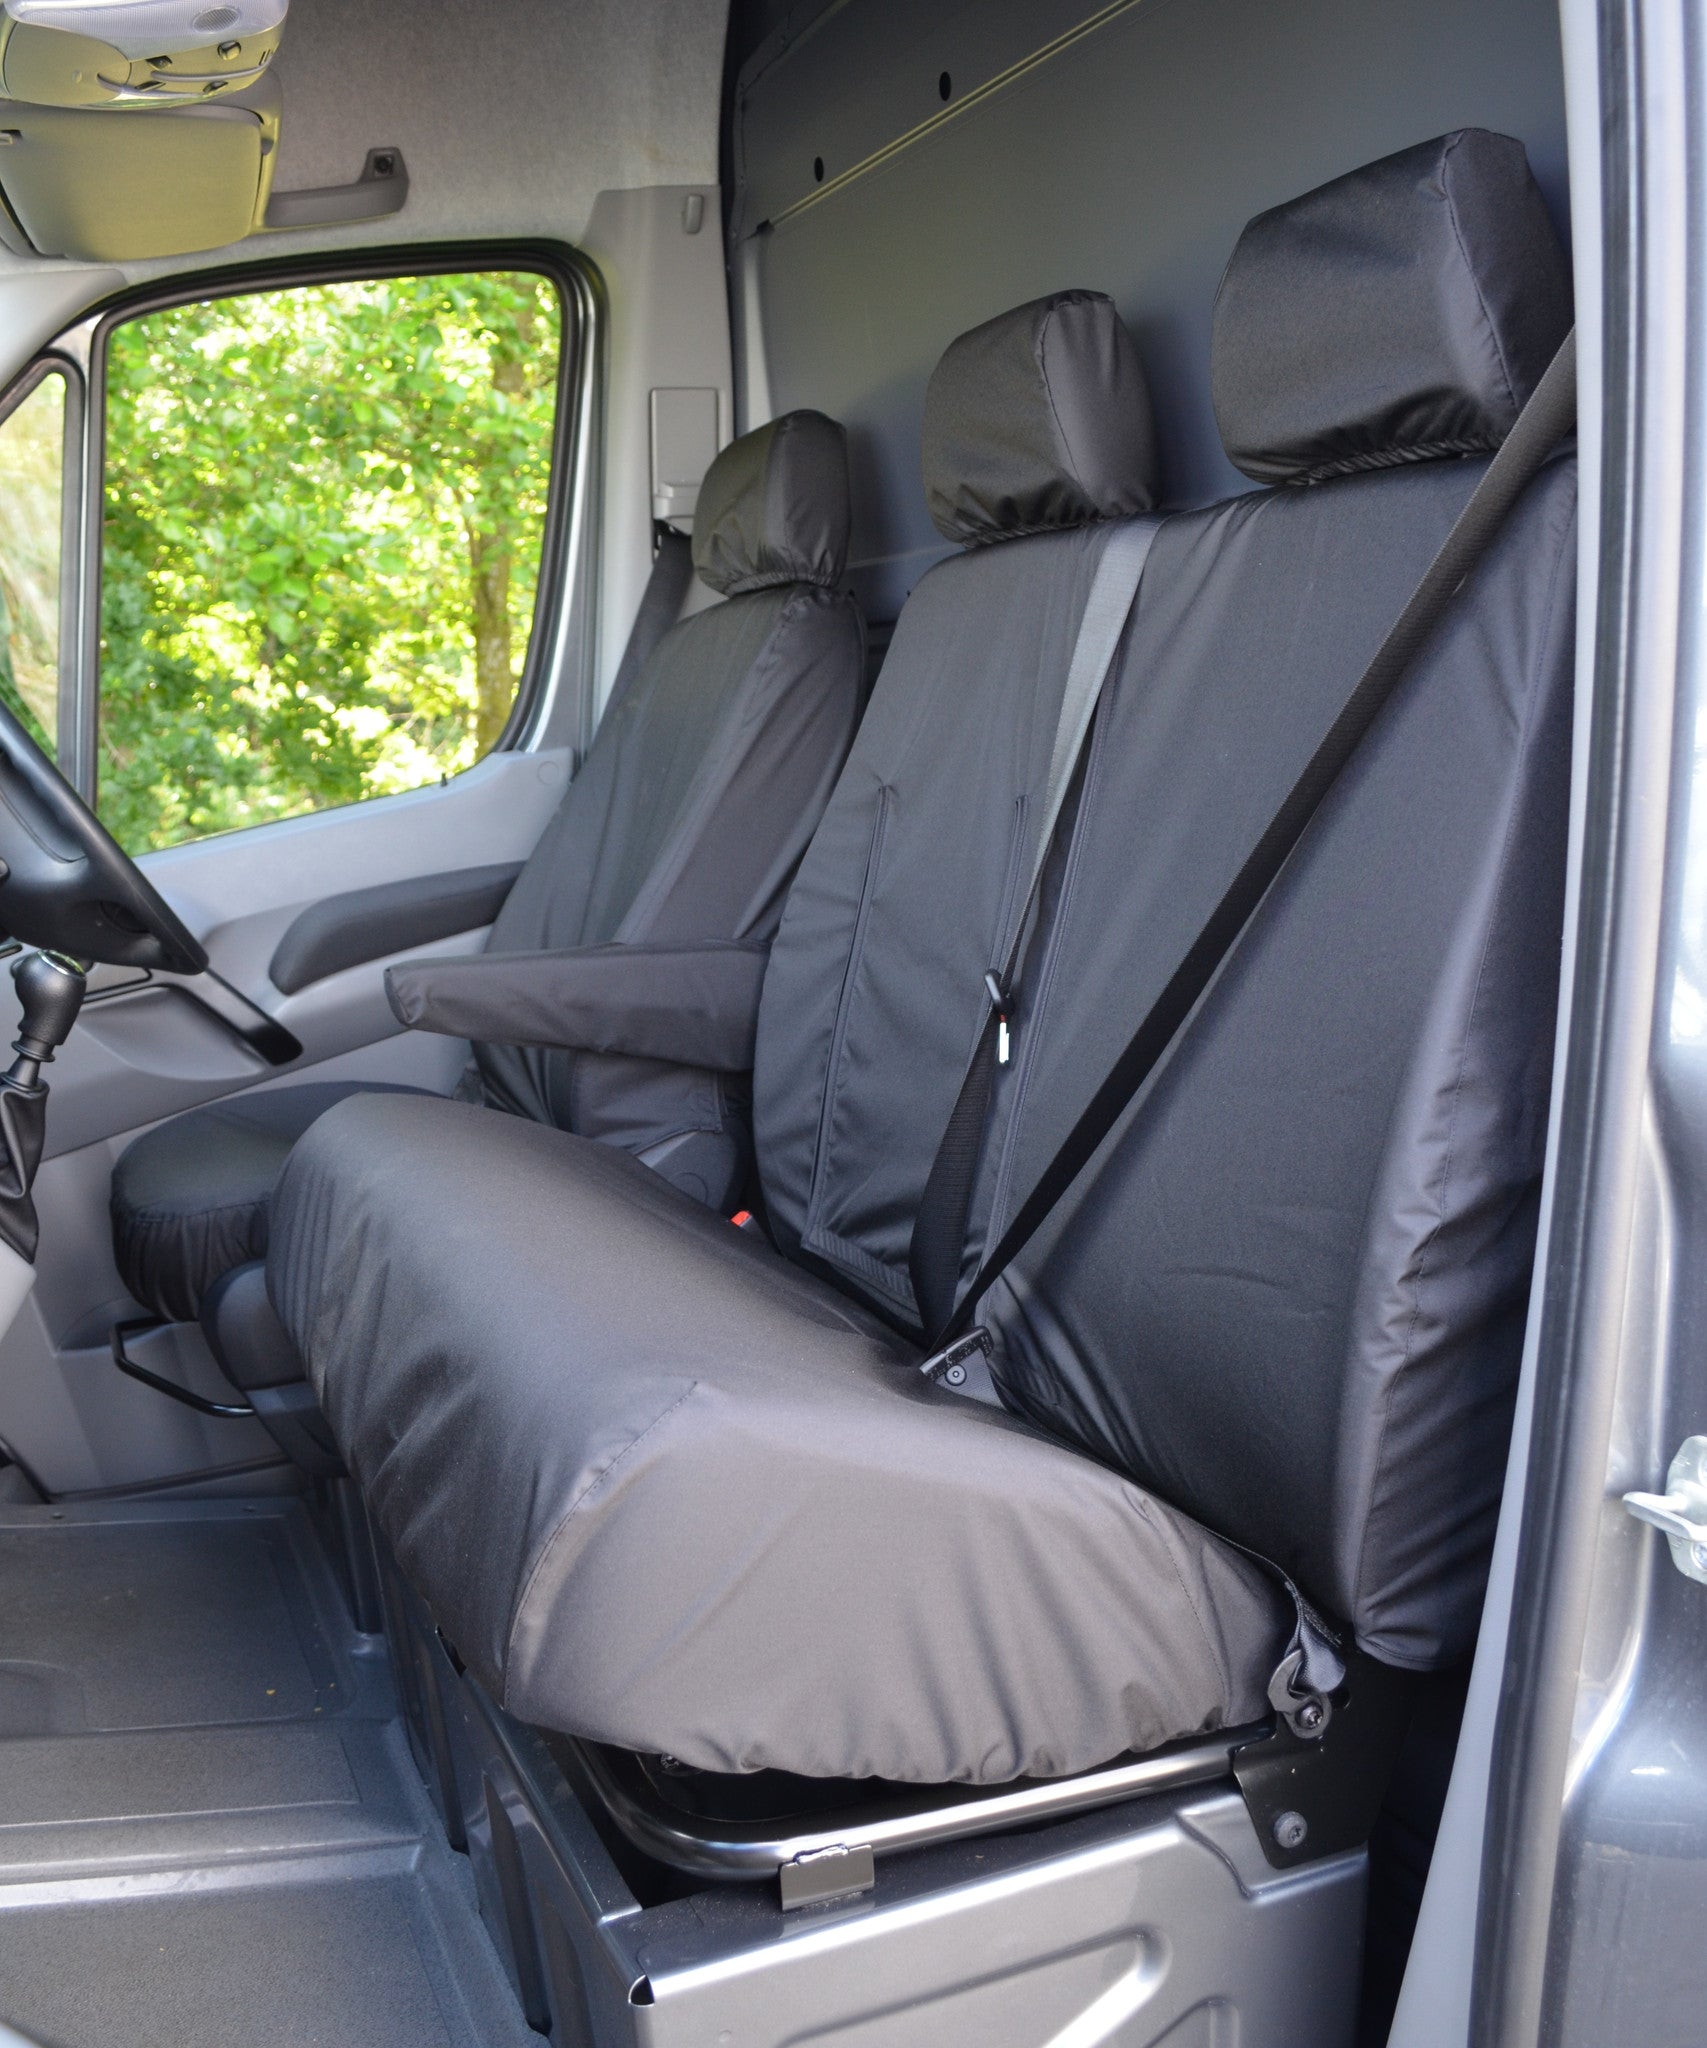 Mercedes Sprinter 2007 2+1 WATERPROOF VAN SEAT COVERS GREY HEAVY DUTY